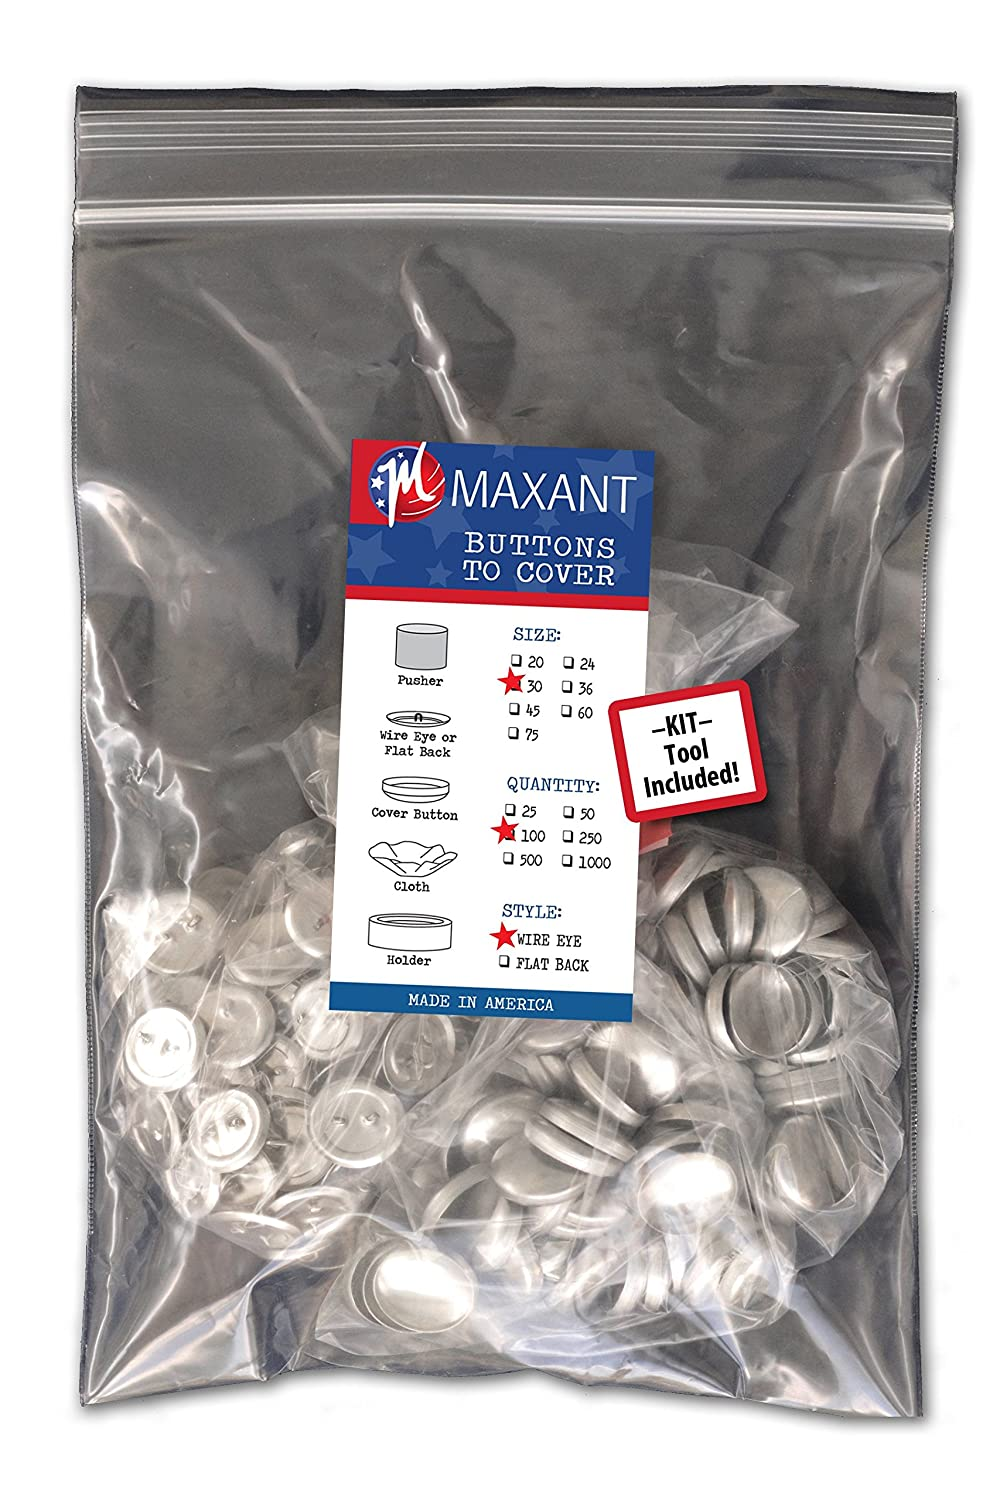 100 Buttons to Cover - Made in USA - Self Cover Buttons with wire eyes size 20 with Tool Maxant Buttons